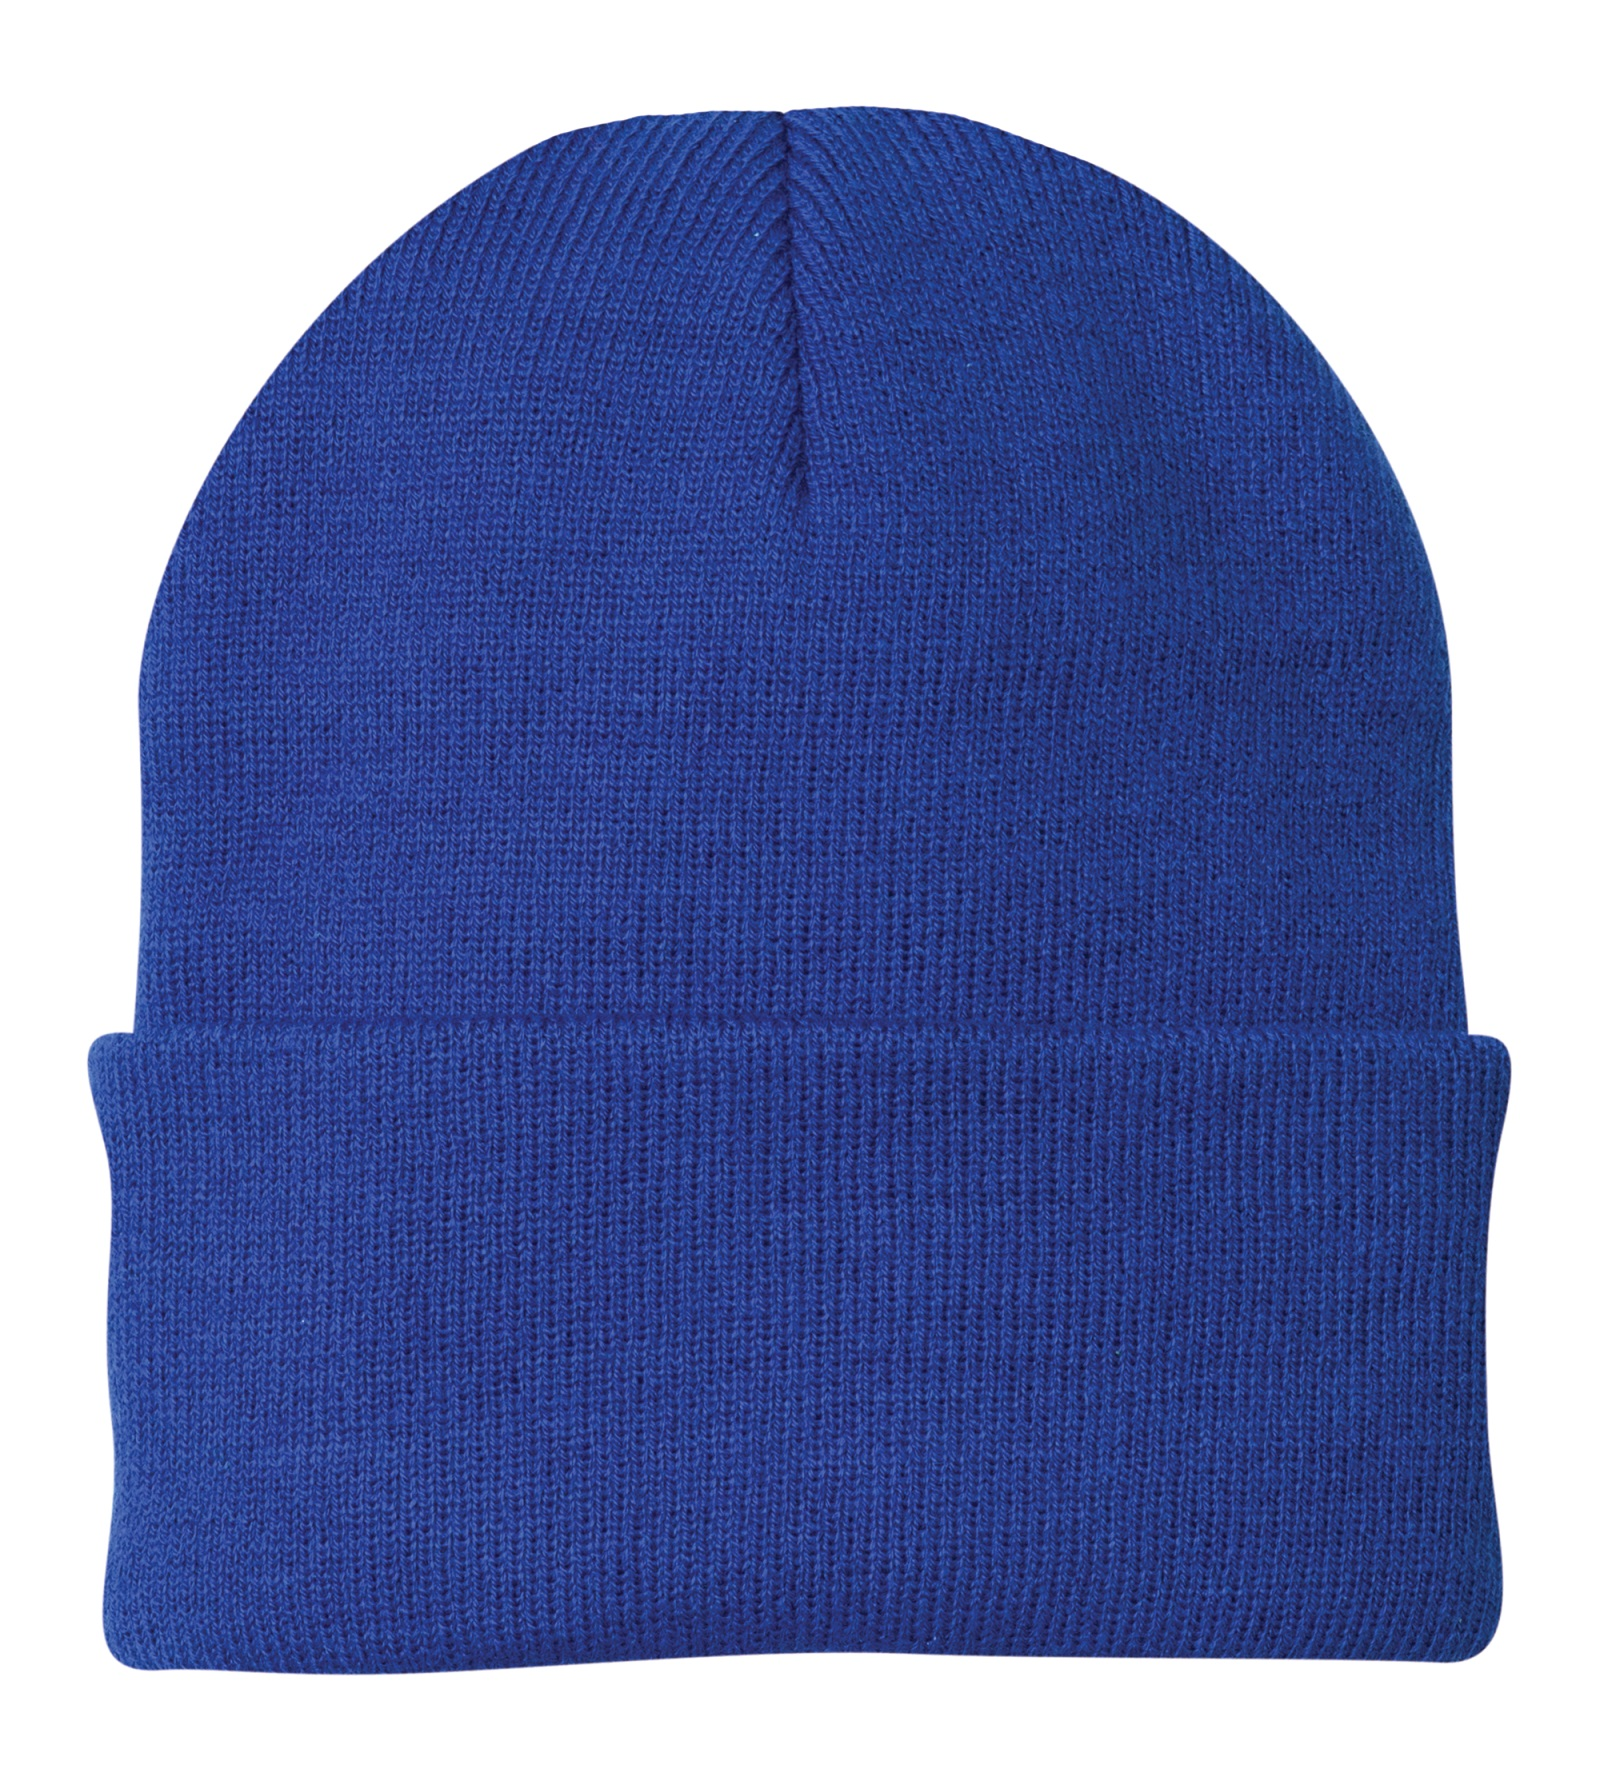 Port & Company Embroidered Knit Cap